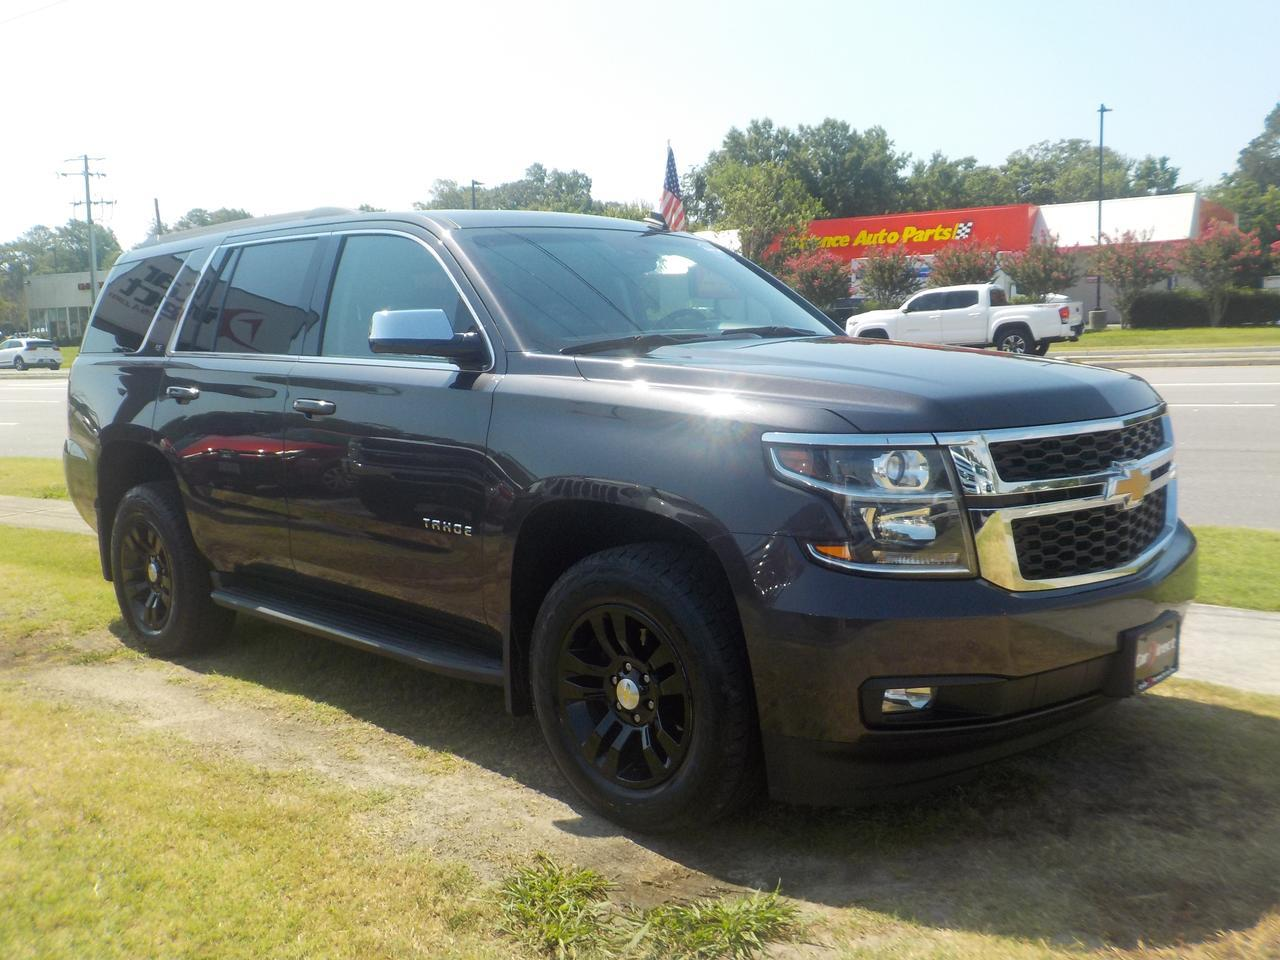 2015 CHEVROLET TAHOE LT 4X4,BOSE SOUND, POWER 3RD ROW, NAVIGATION, RUNNING BOARDS, BLUETOOTH, HEATED SEATS! Virginia Beach VA